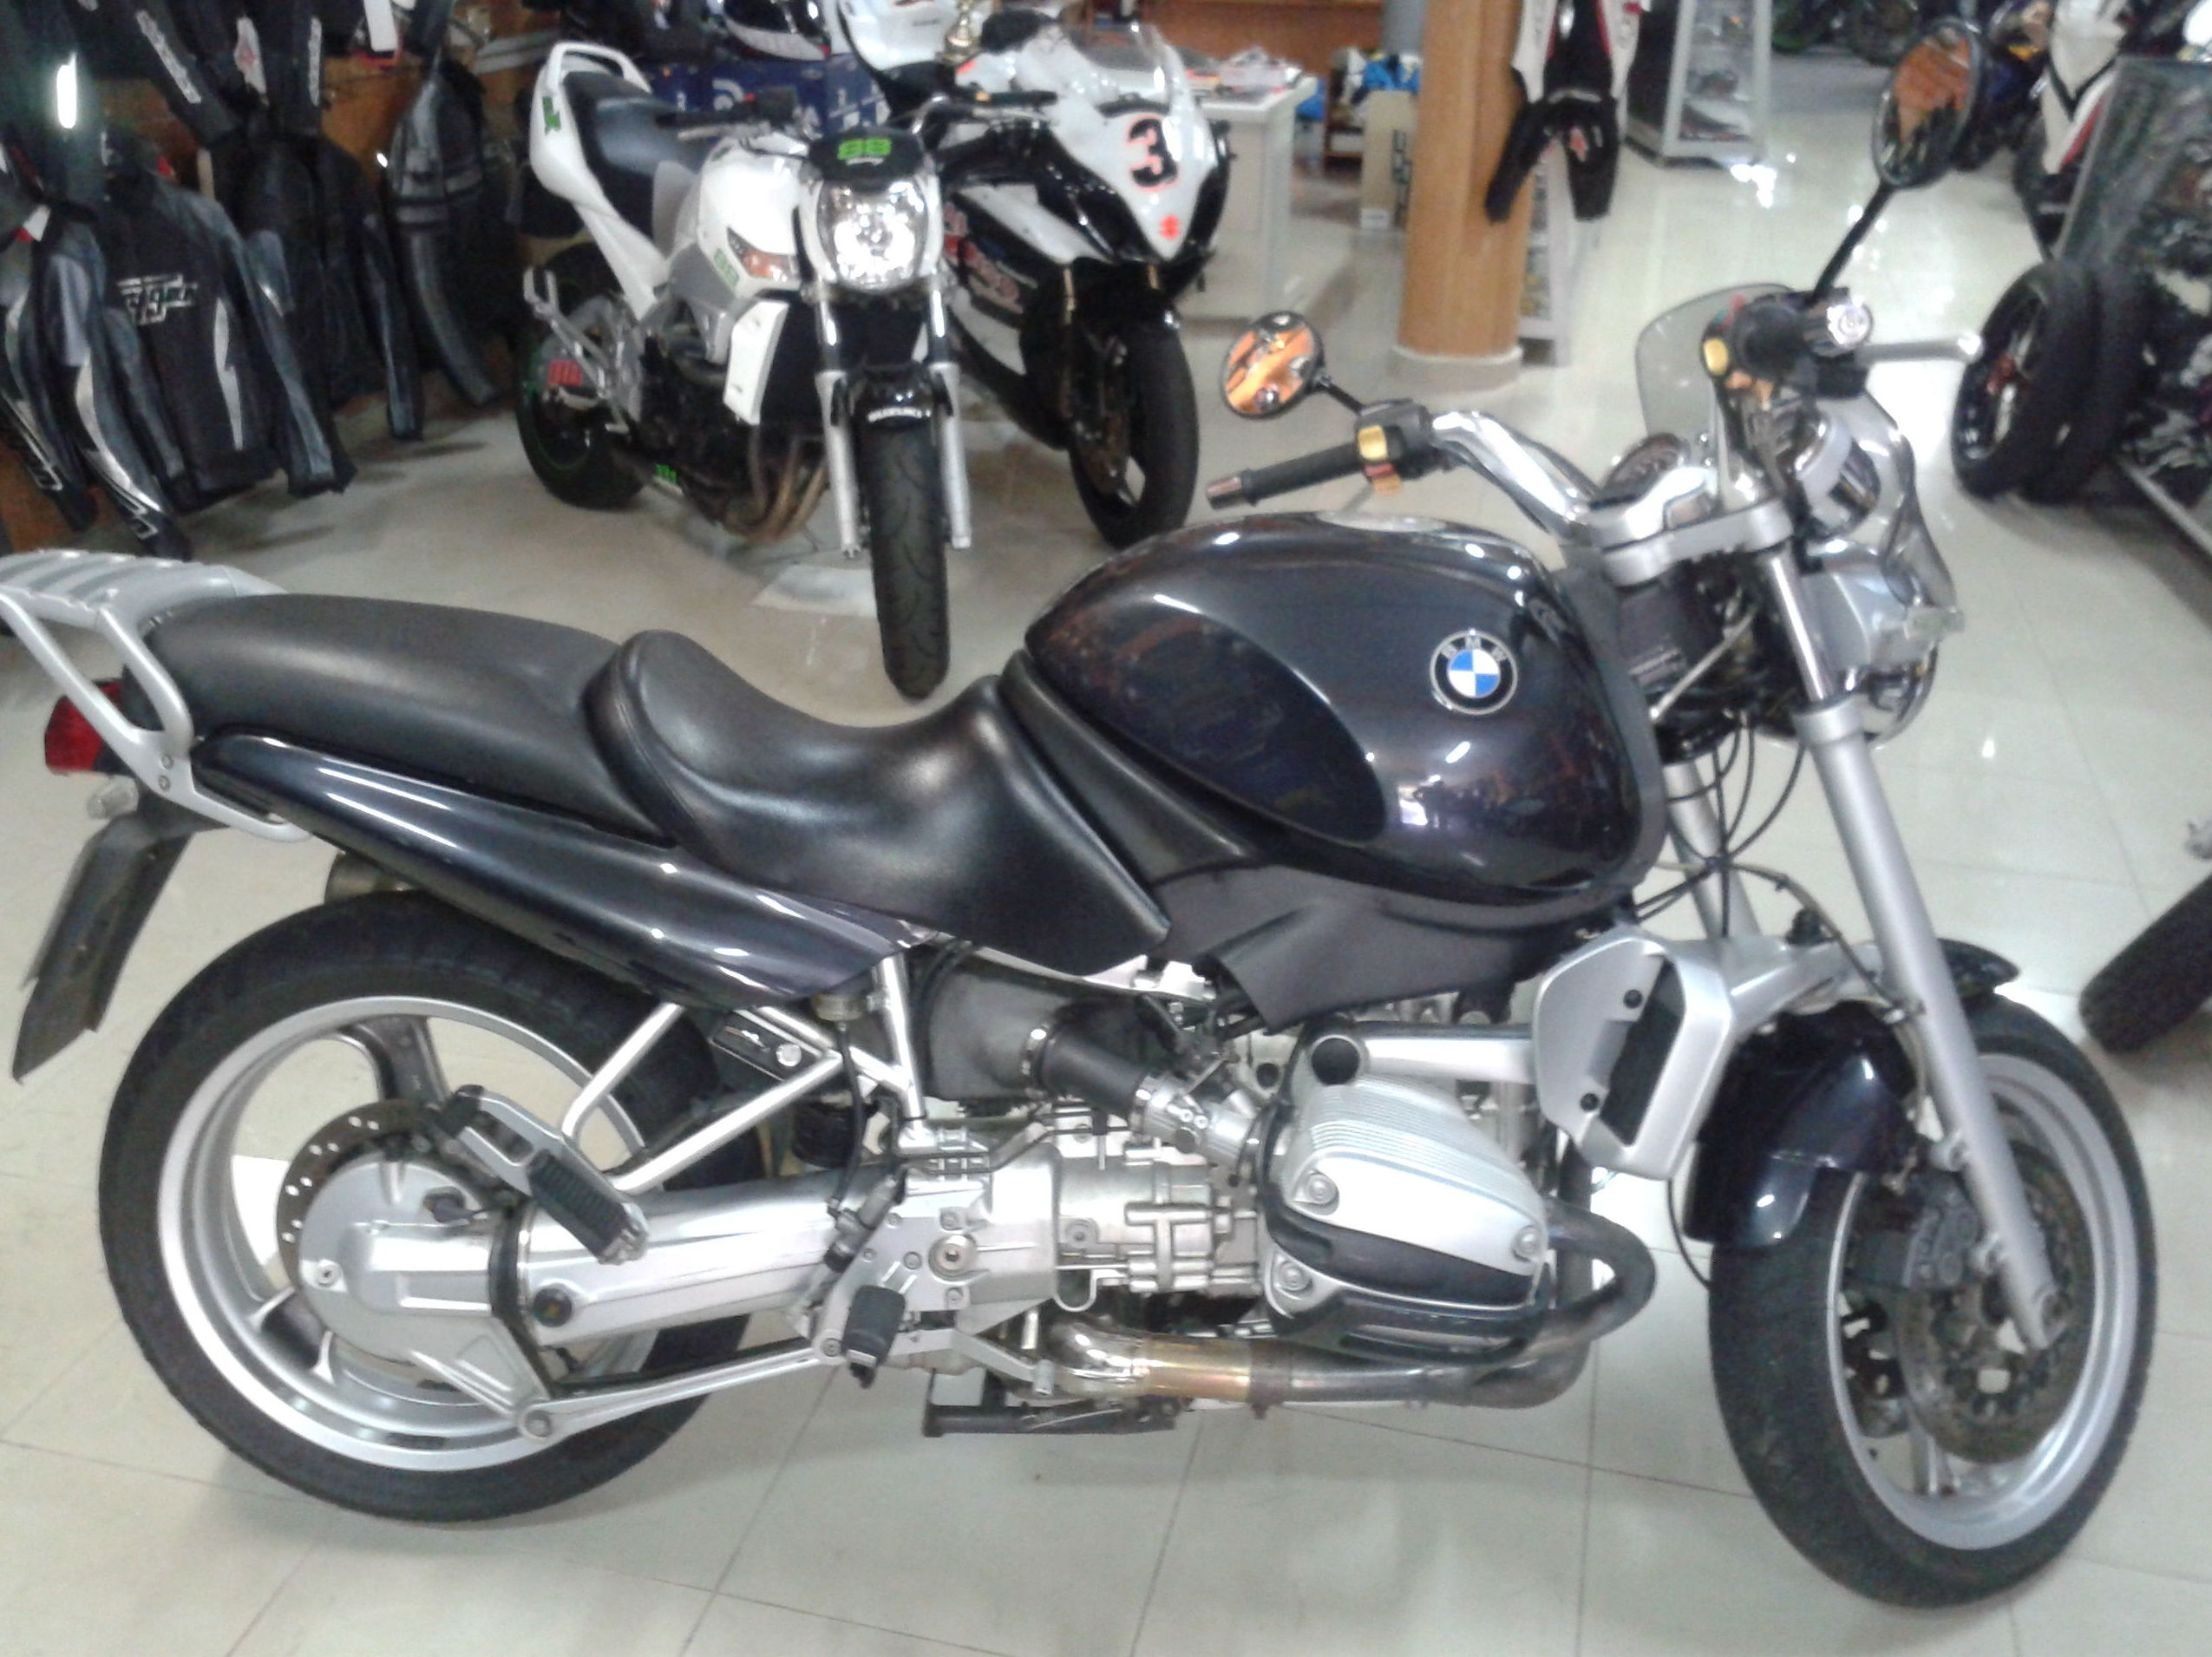 BMW R 850 2001: Productos de Alonso Competición